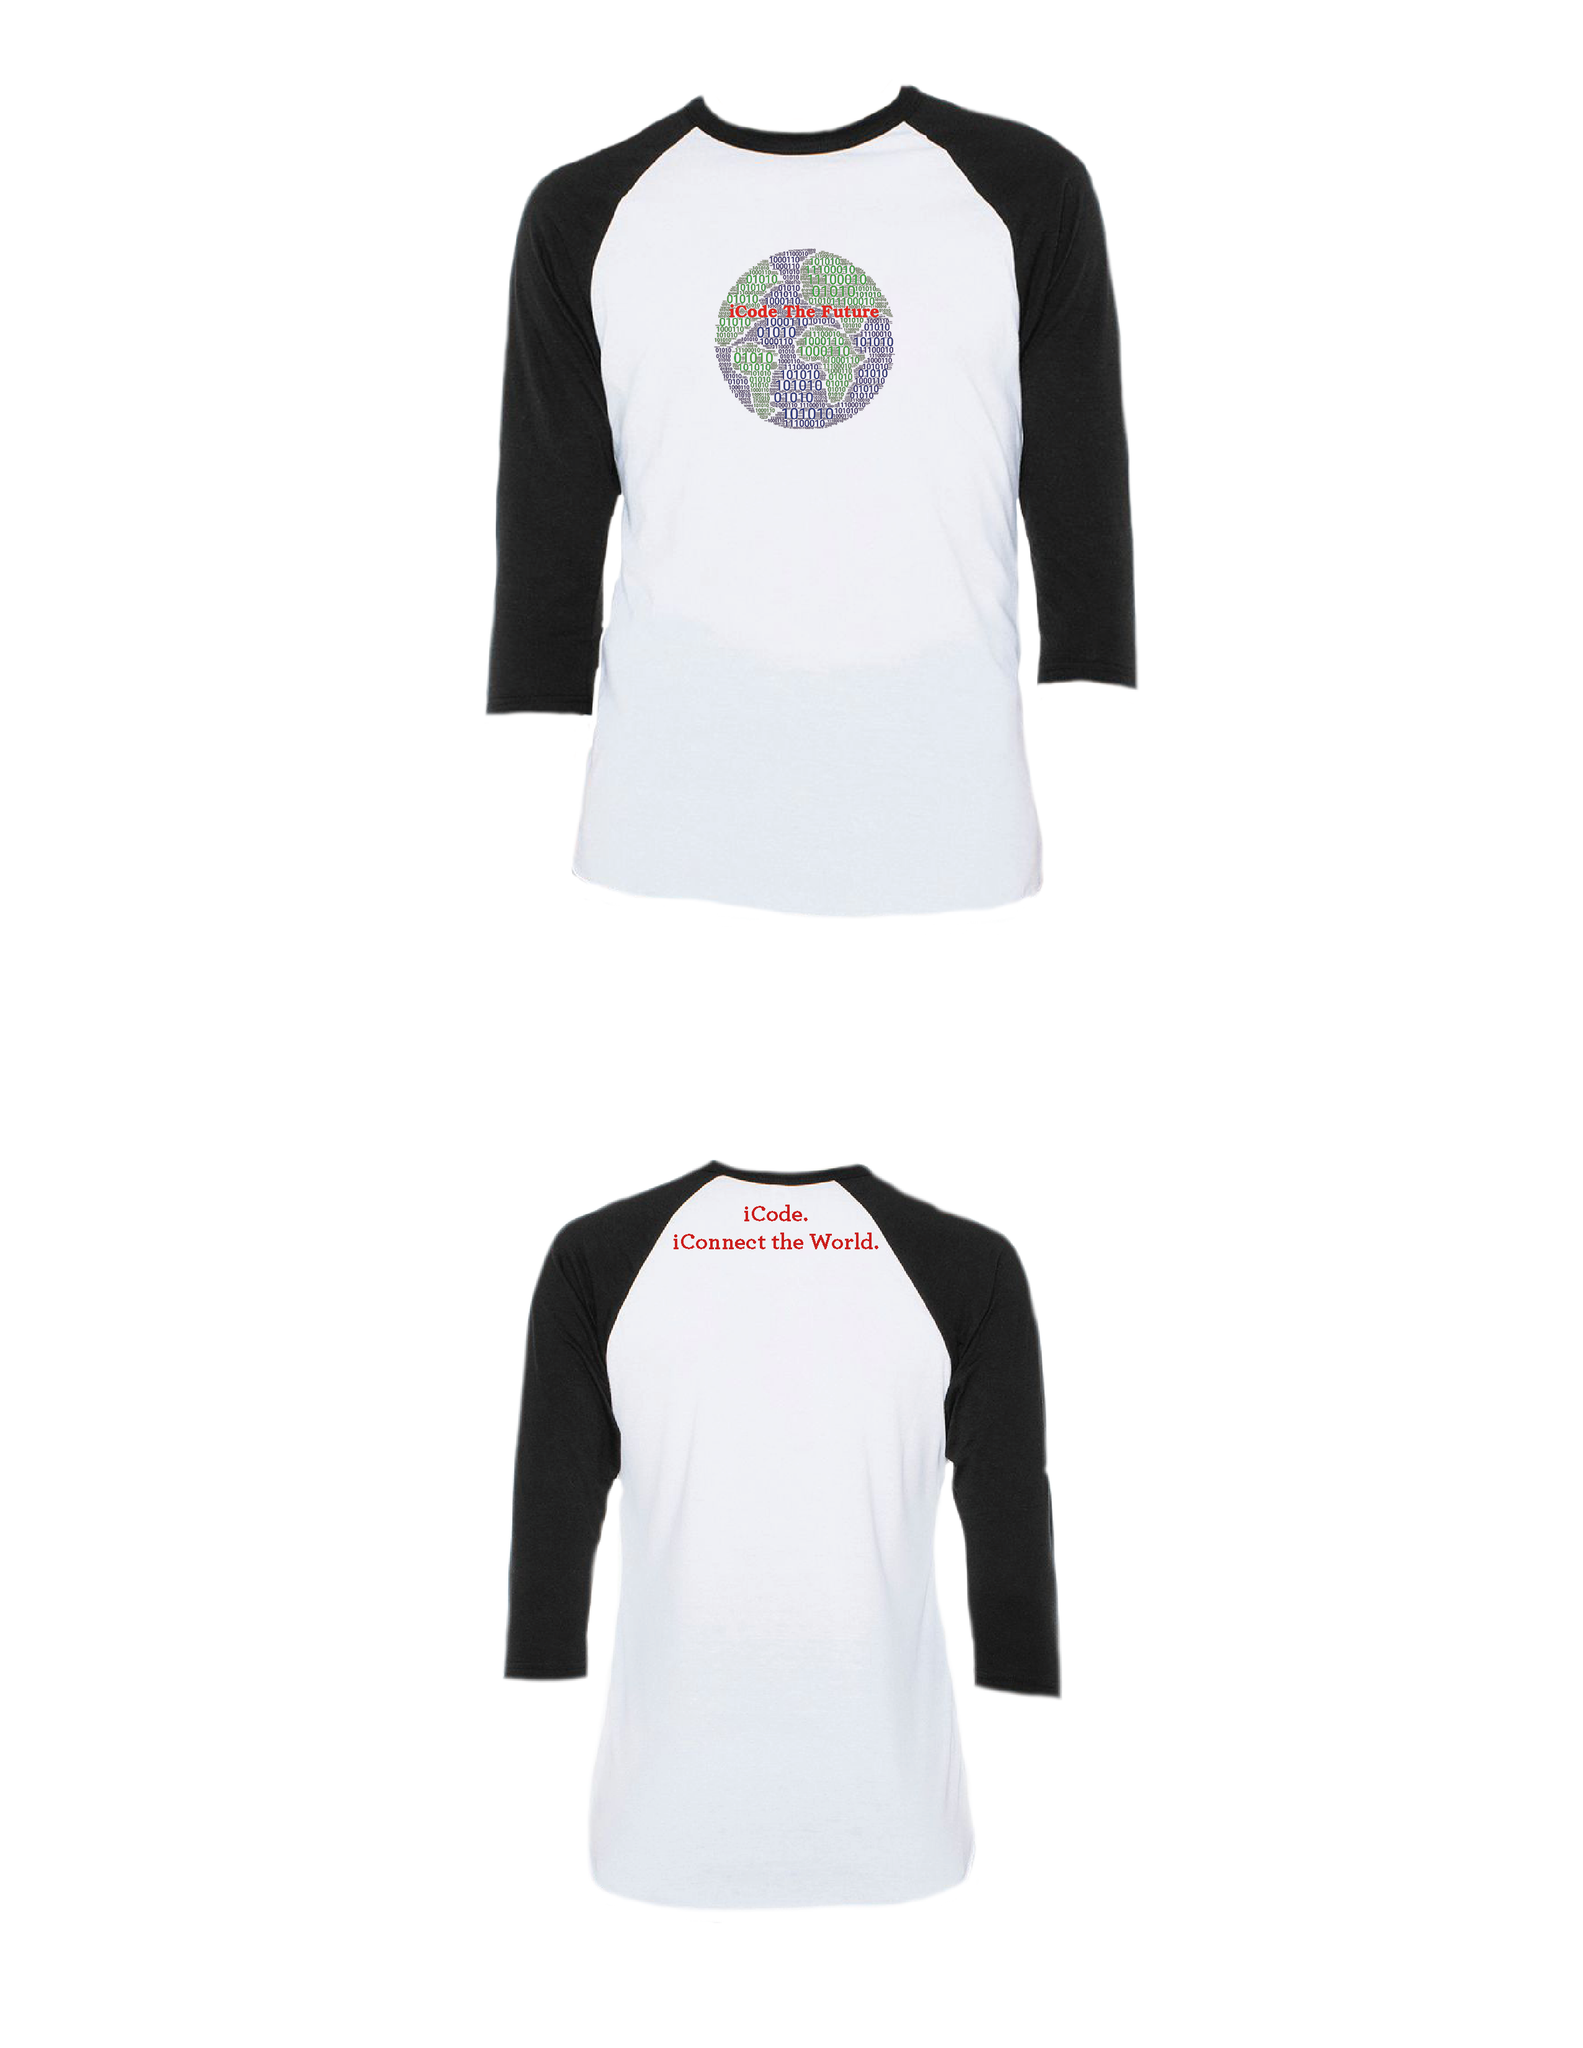 iCode the Future Raglan 3/4 (Youth)